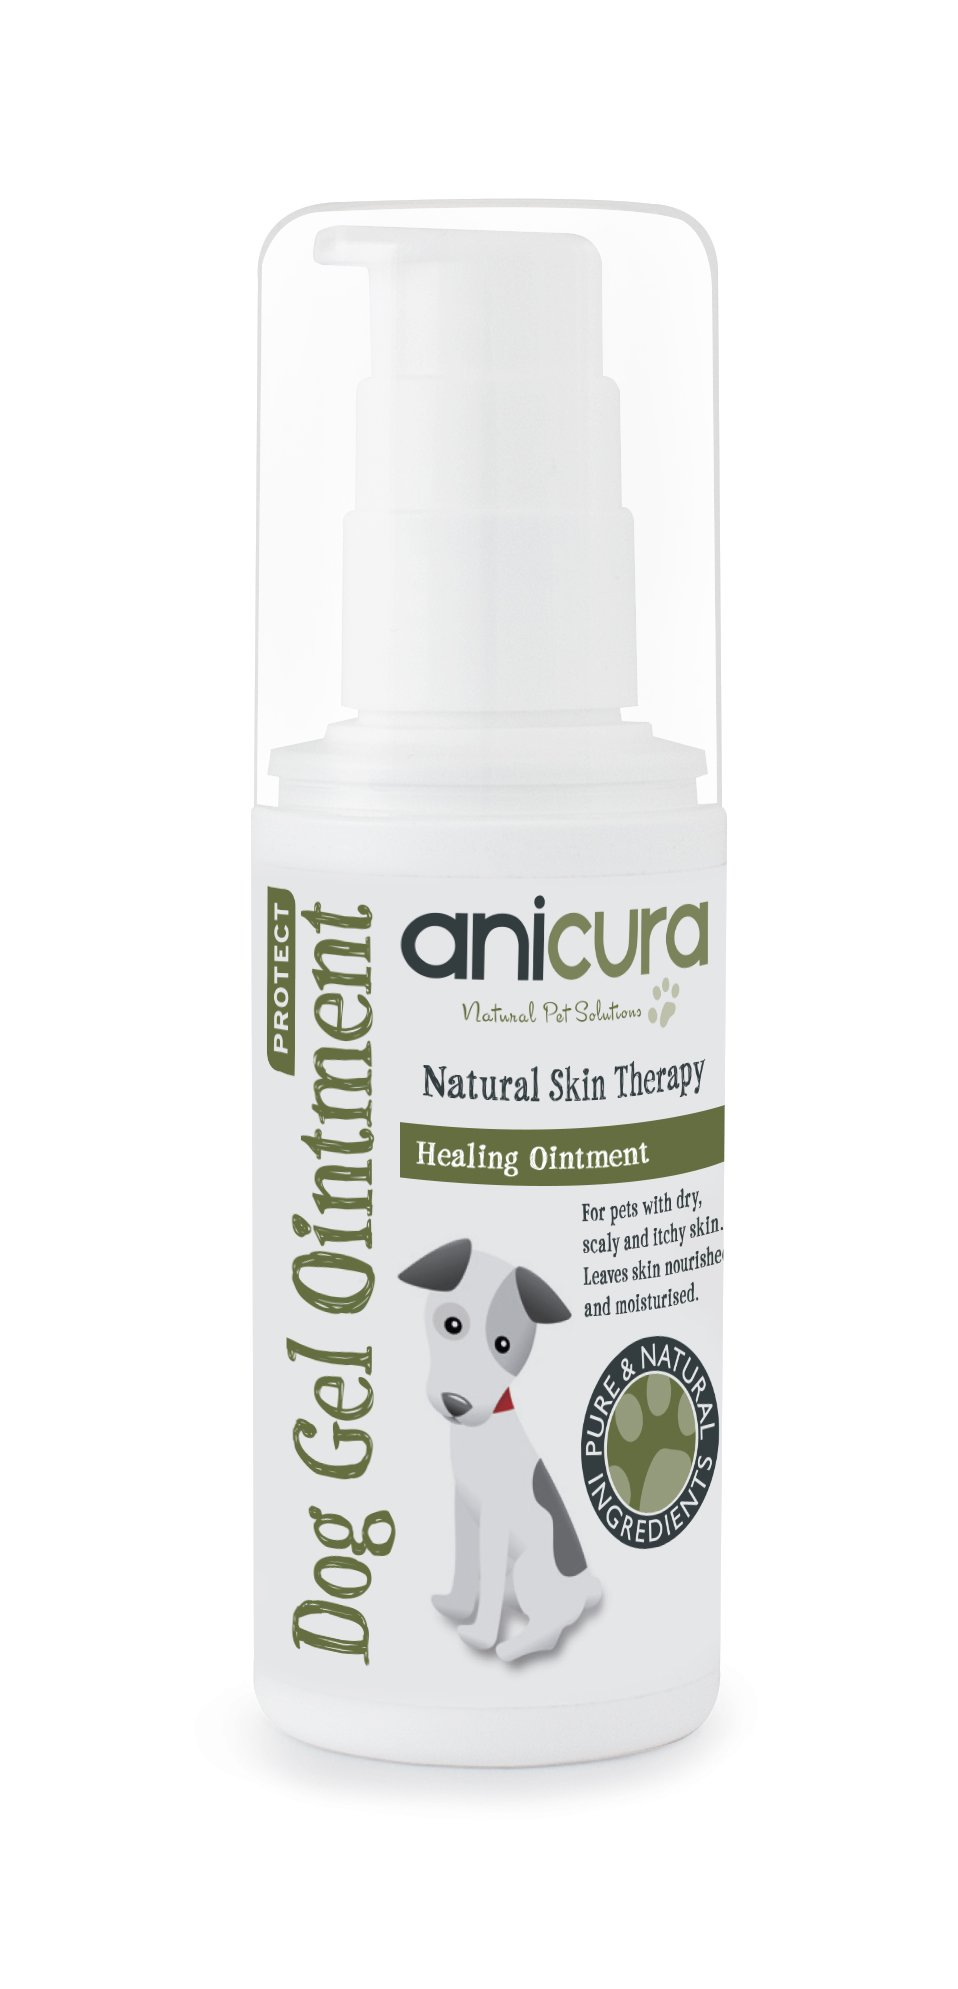 Anicura Natural Dog Gel Ointment for Itchy Skin, Hot Spots, Scabs & Wounds